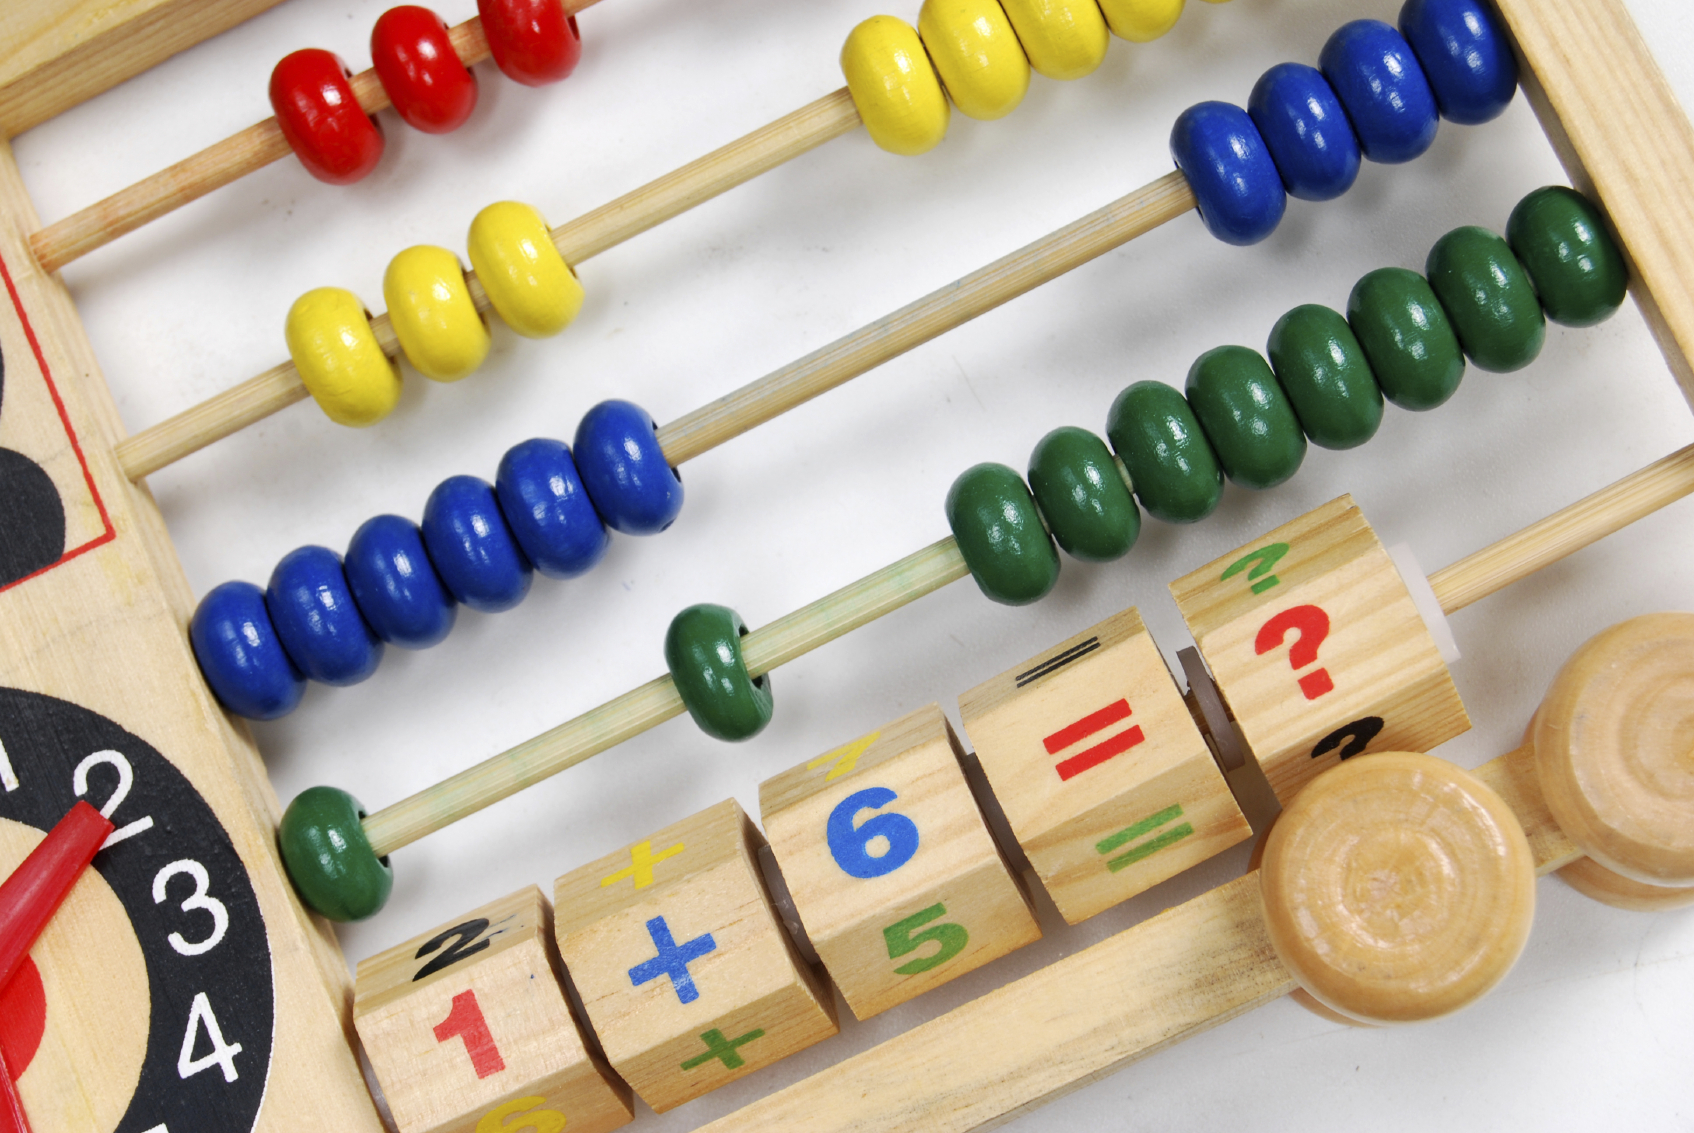 Math Activities For Preschoolers To Do At Home